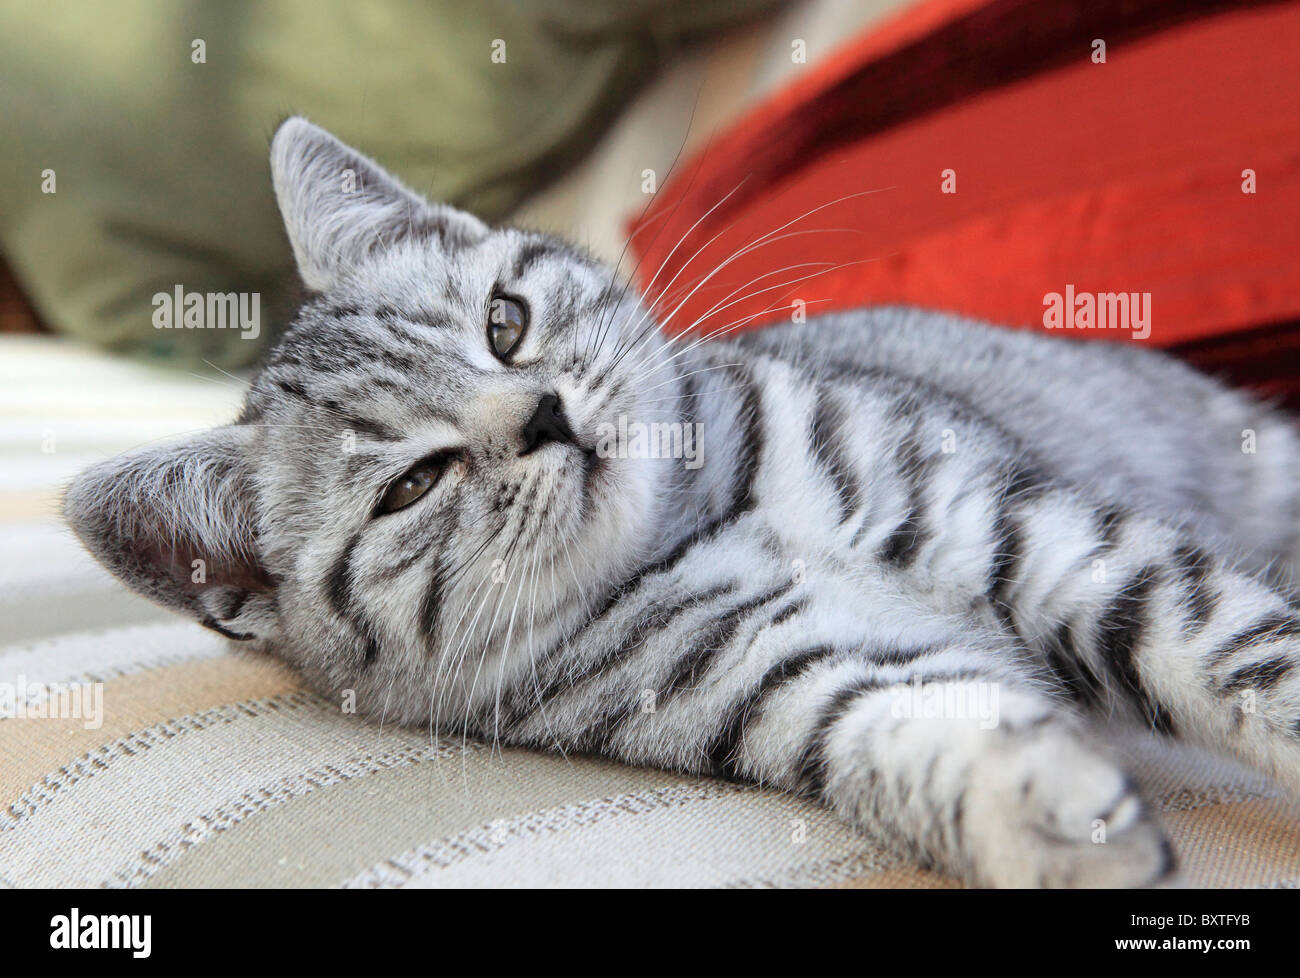 British Shorthair Silver Spotted Kitten 3 Months Old Stock